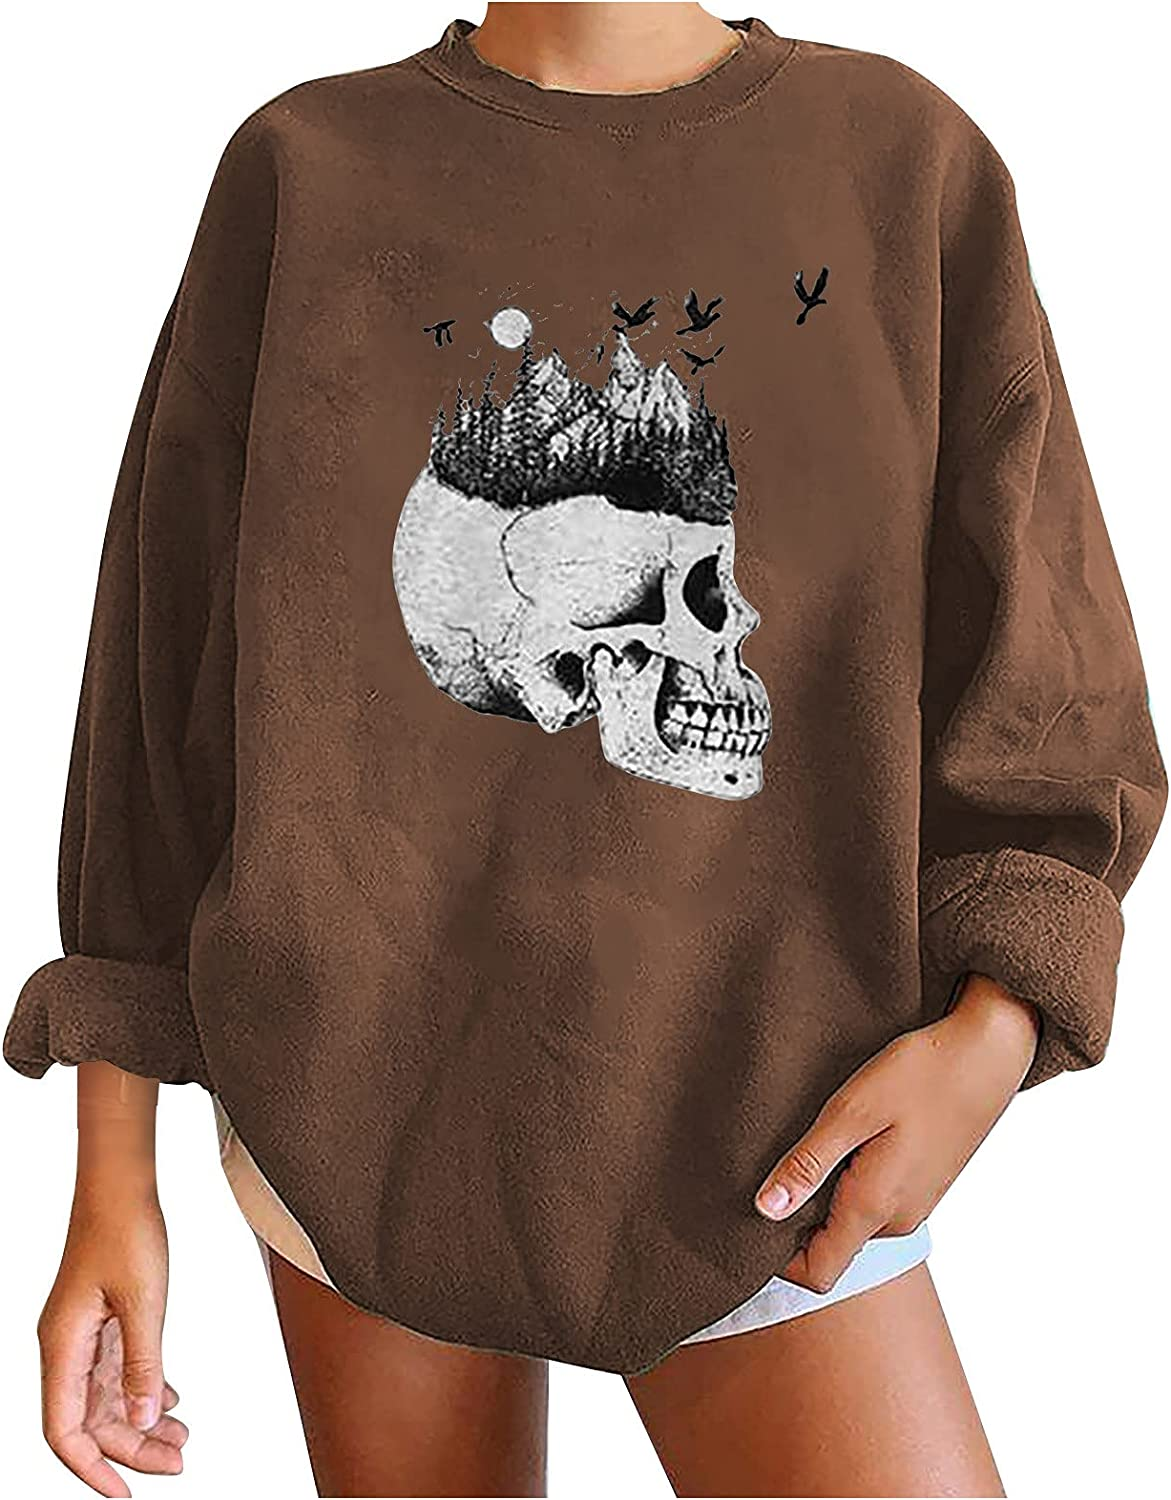 Halloween Printted Oversized Baggy Sweatshirt Pullover for Women Casual Funny O Neck Long Sleeve Sweatshirt Tops Blouse